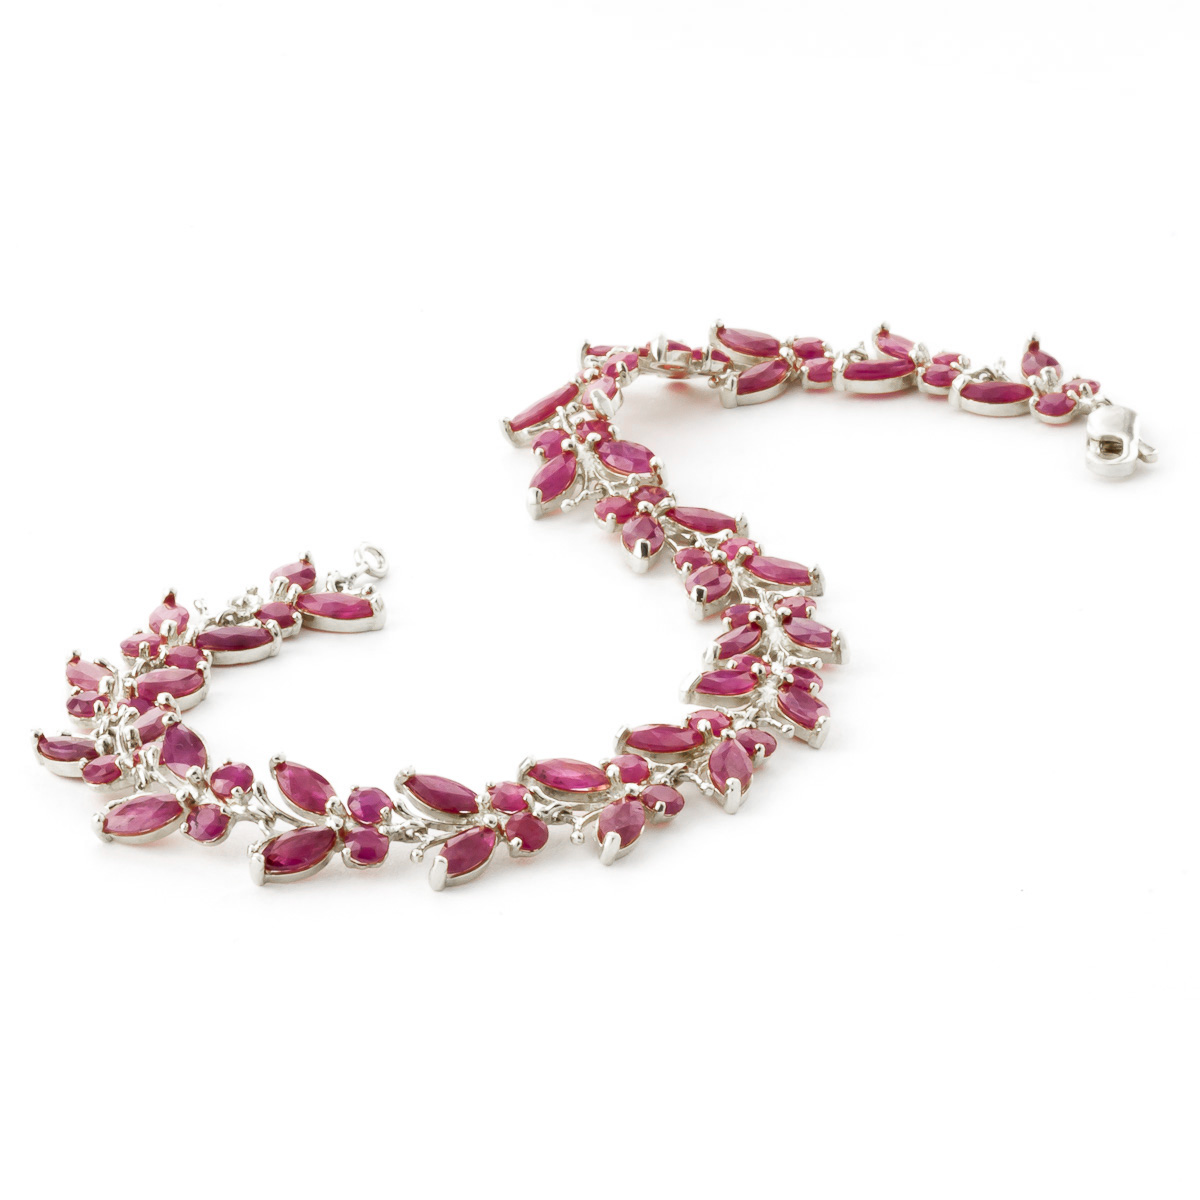 Ruby Butterfly Bracelet 16.5 ctw in 9ct White Gold